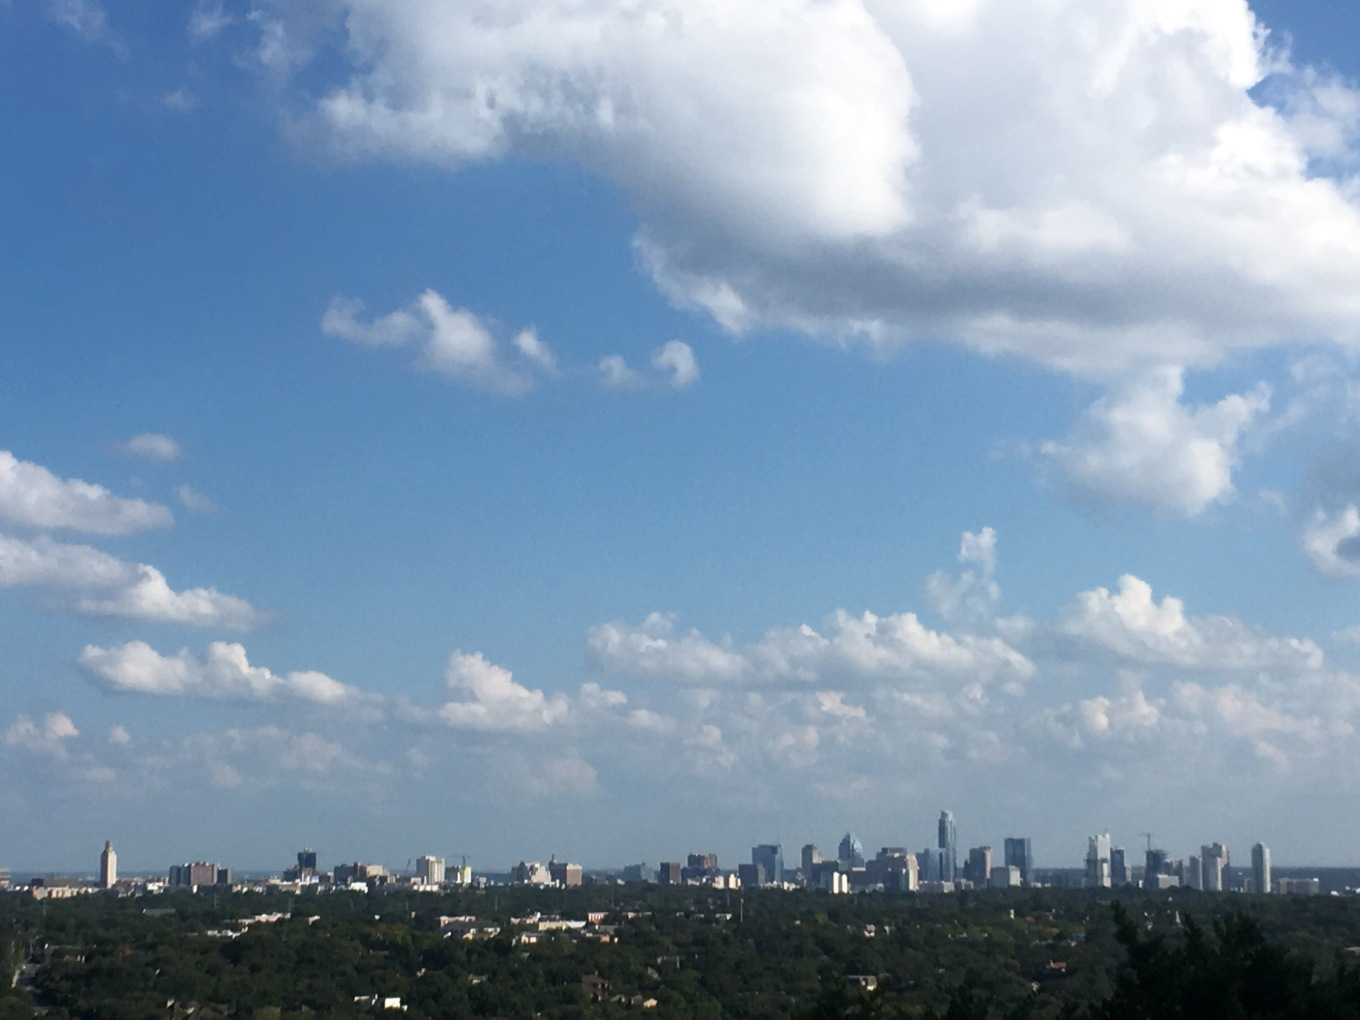 The skyline of Austin, Texas as viewed from the Mt. Bonnell Terrace in Covert Park